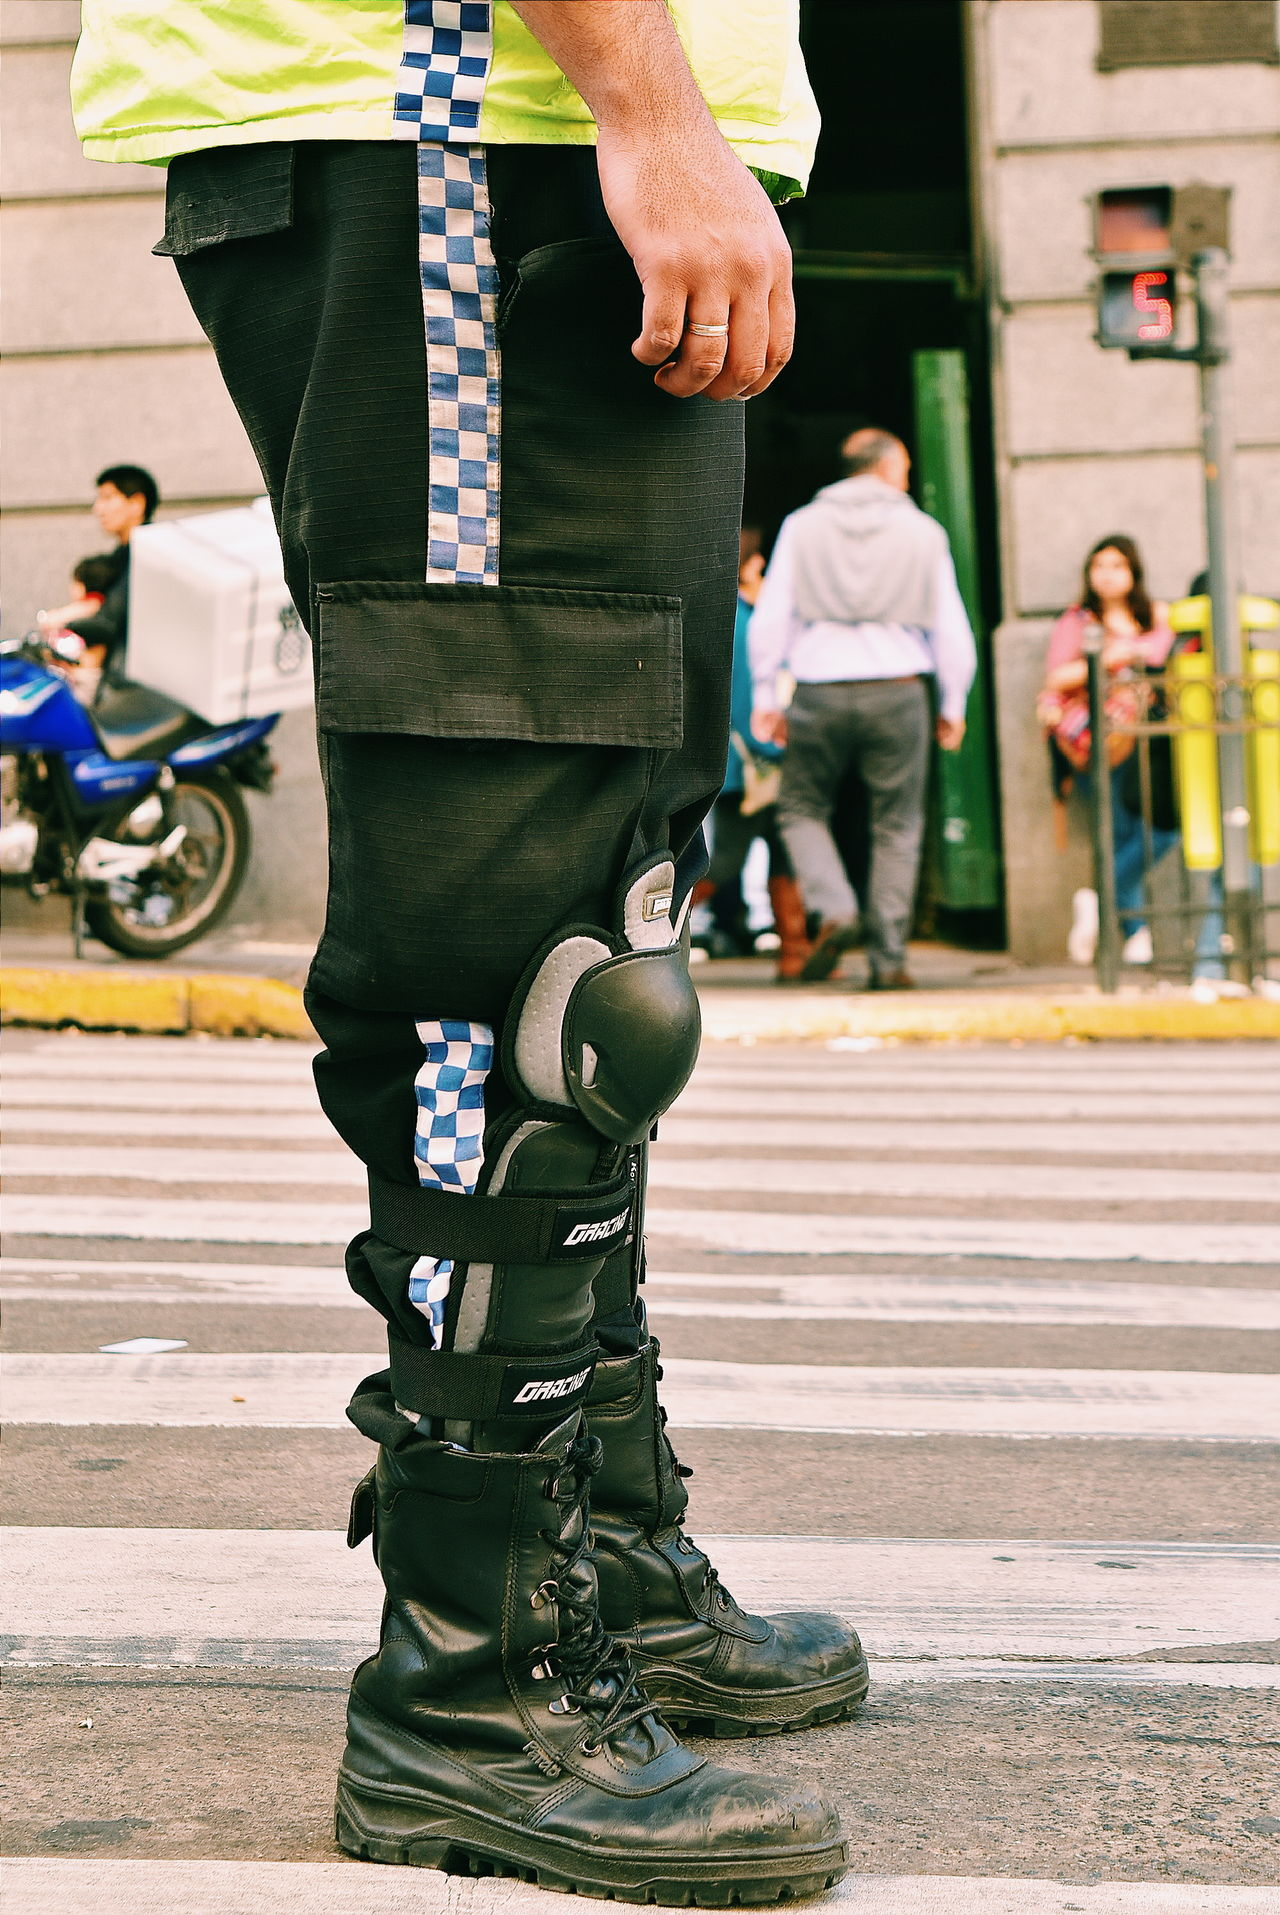 Casual Clothing City Life City Street Footpath Traffic Control Traffic Jam Traffic Police  Policeman Boots Police Streetphotography Police At Work City Street Nikon Urbanphotography Bokeh Photography TheWeekOnEyeEM TakeoverContrast NikonD5500 Close-up City Life Flooring Street Human Finger